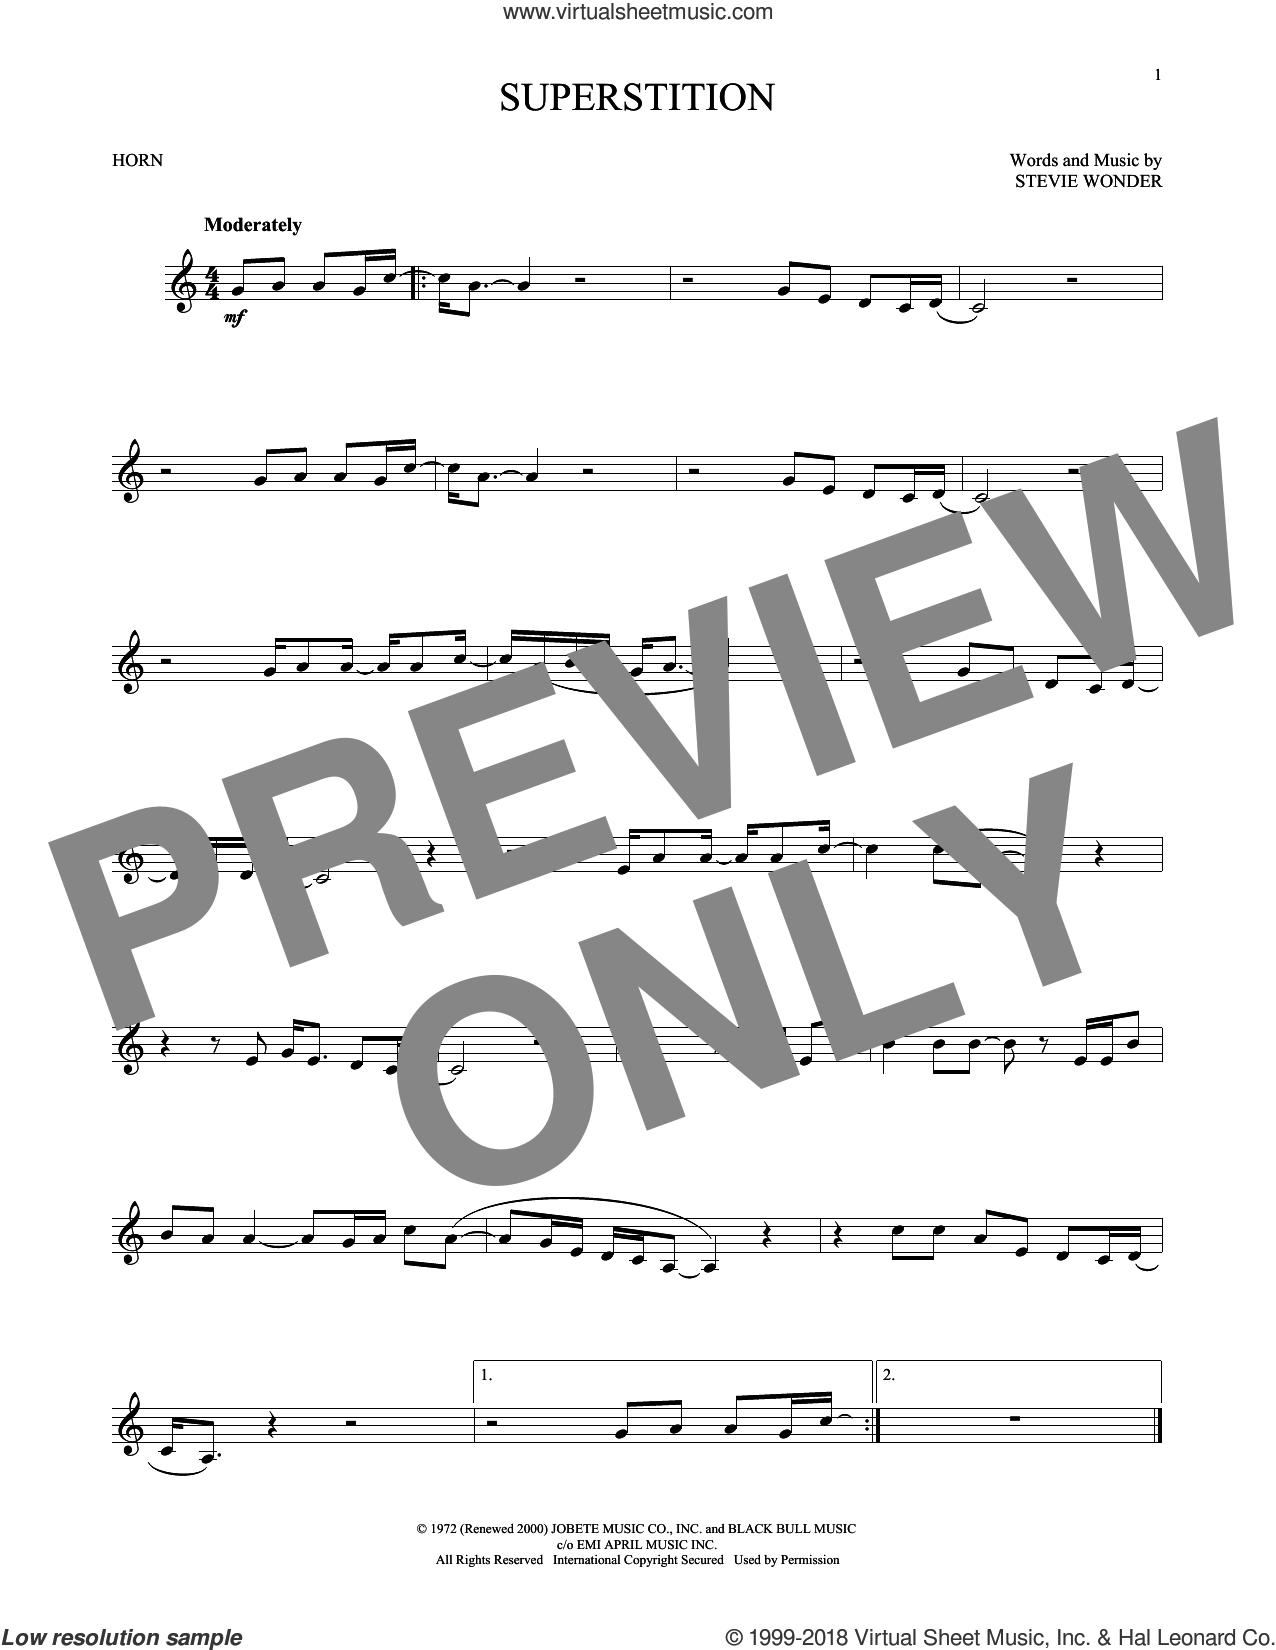 Superstition sheet music for horn solo by Stevie Wonder, intermediate skill level